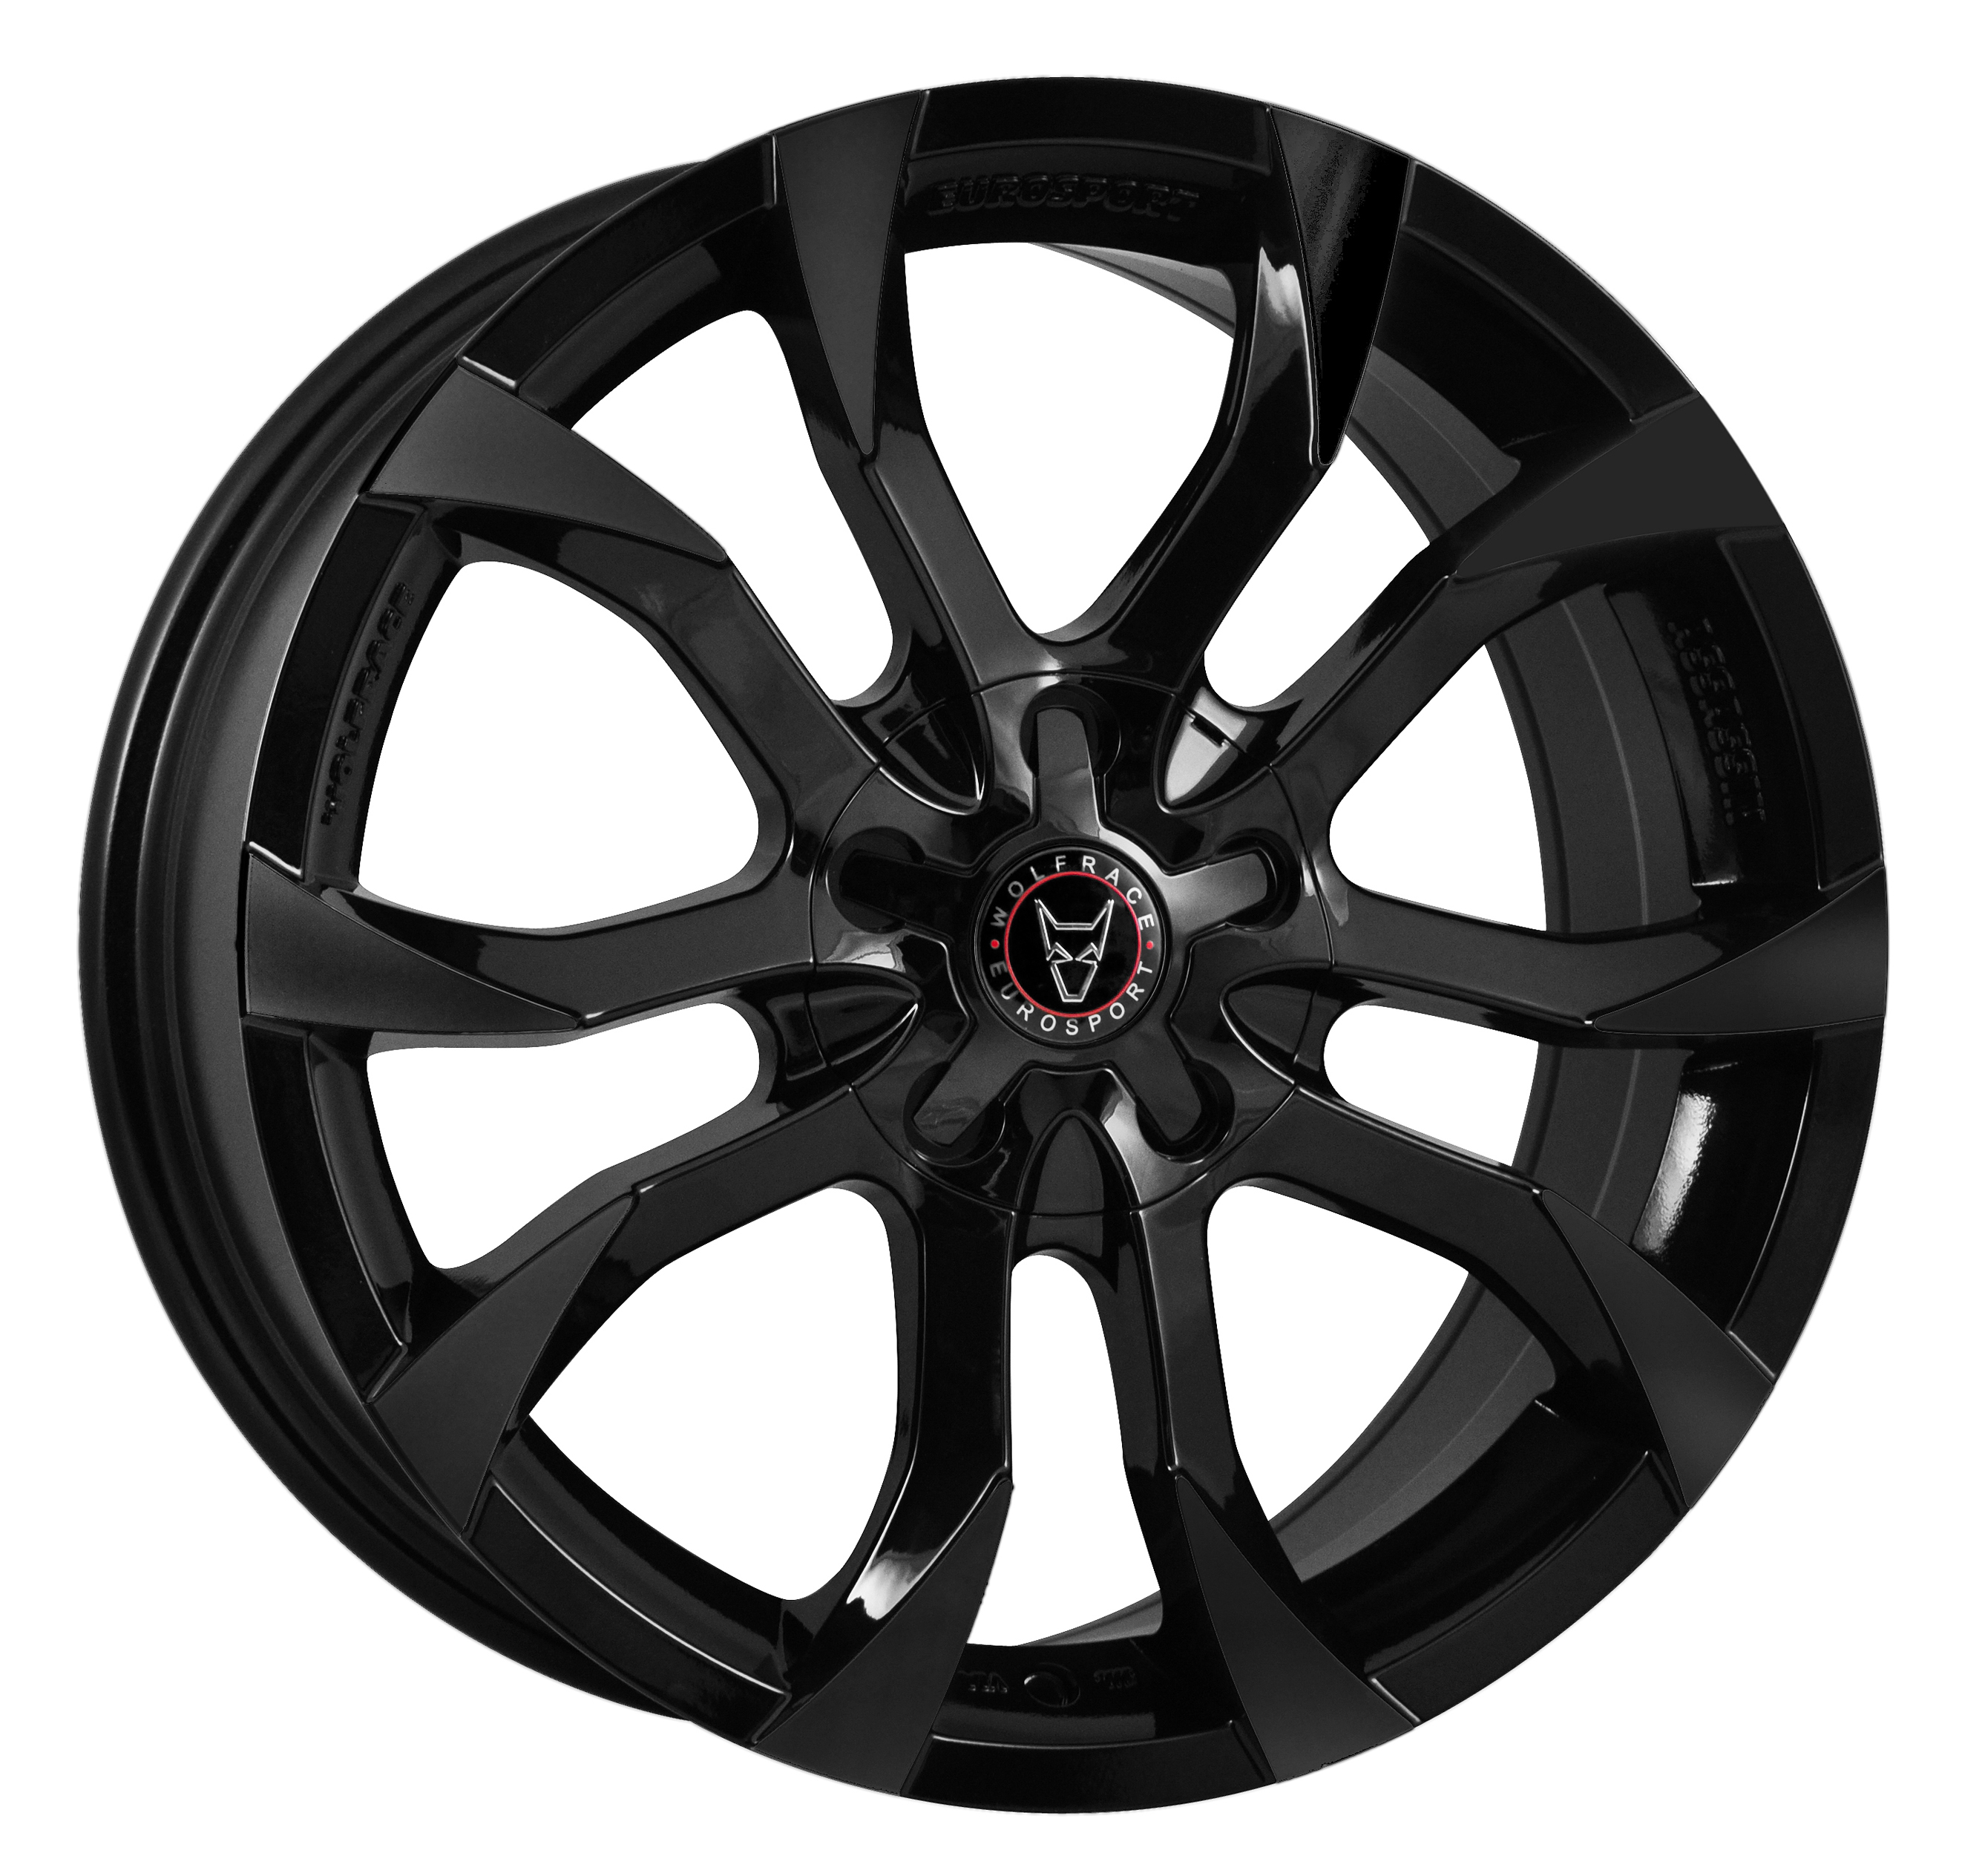 WOLFRACE EUROSPORT ASSASSIN 7x17 5x100/112 ET35 GLOSS BLACK